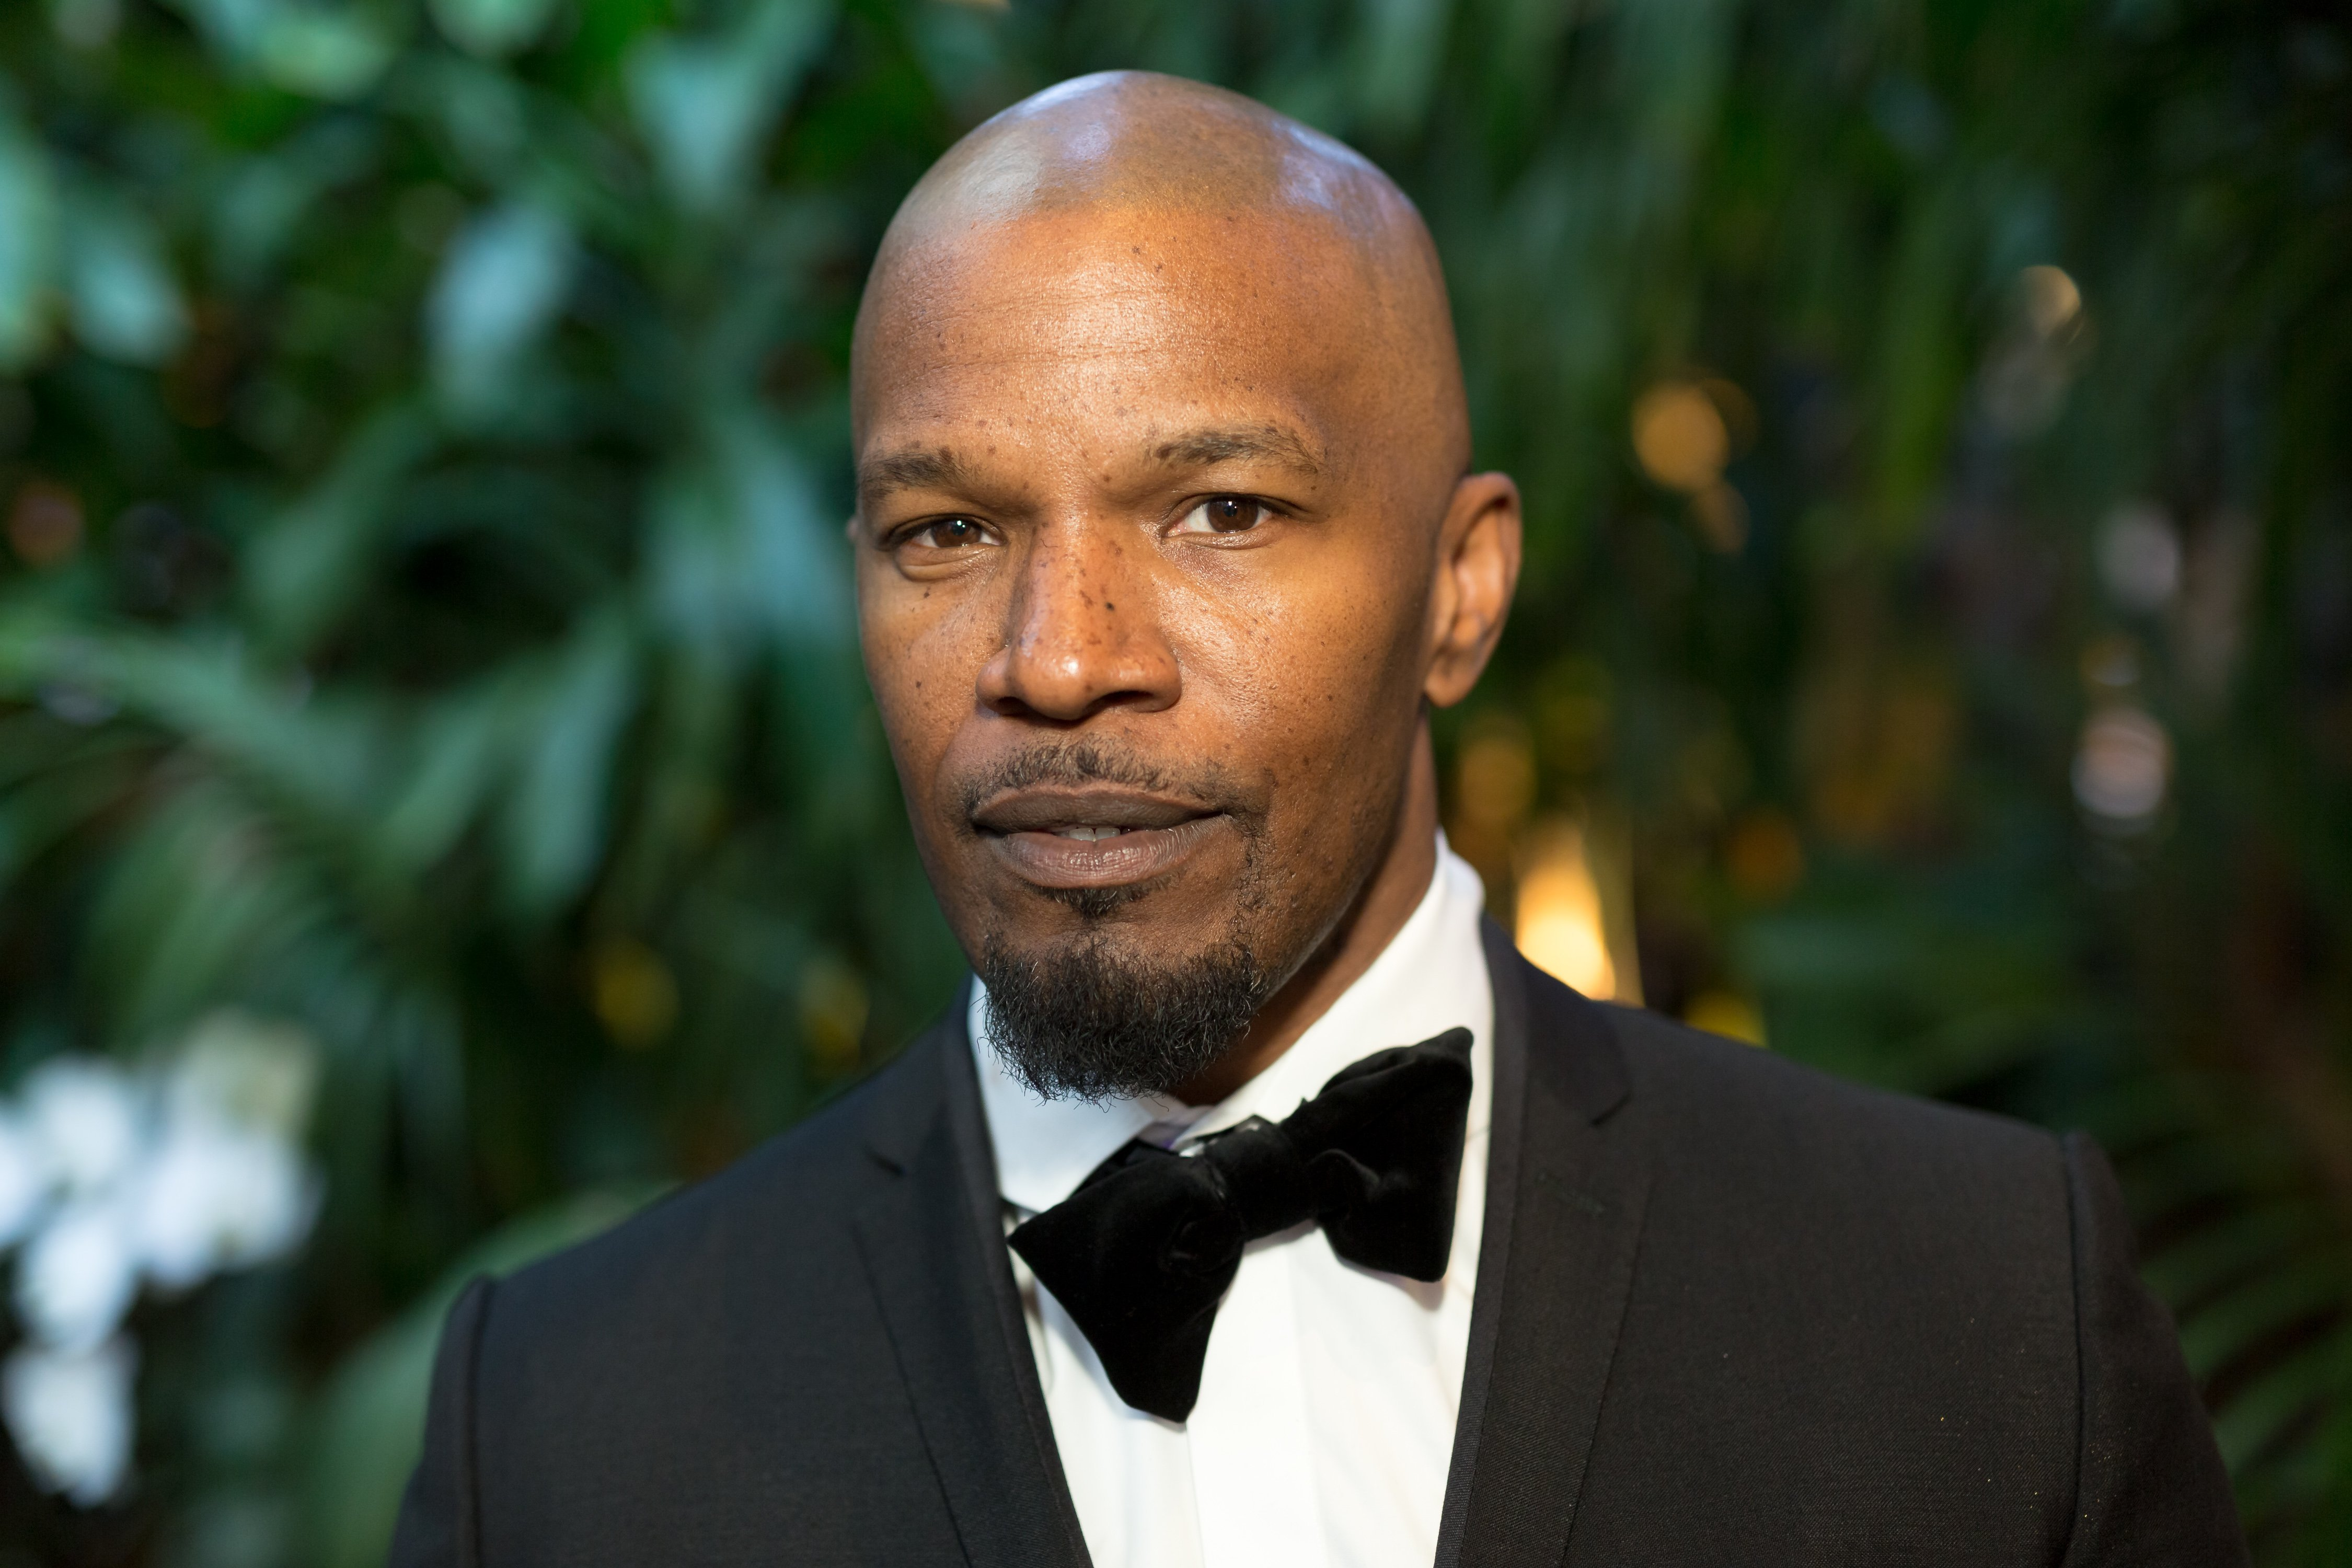 Jamie Foxx at the Mercedez-Benz USA's Official Awards Viewing Party on March 4, 2018 in Los Angeles | Photo: Getty Images